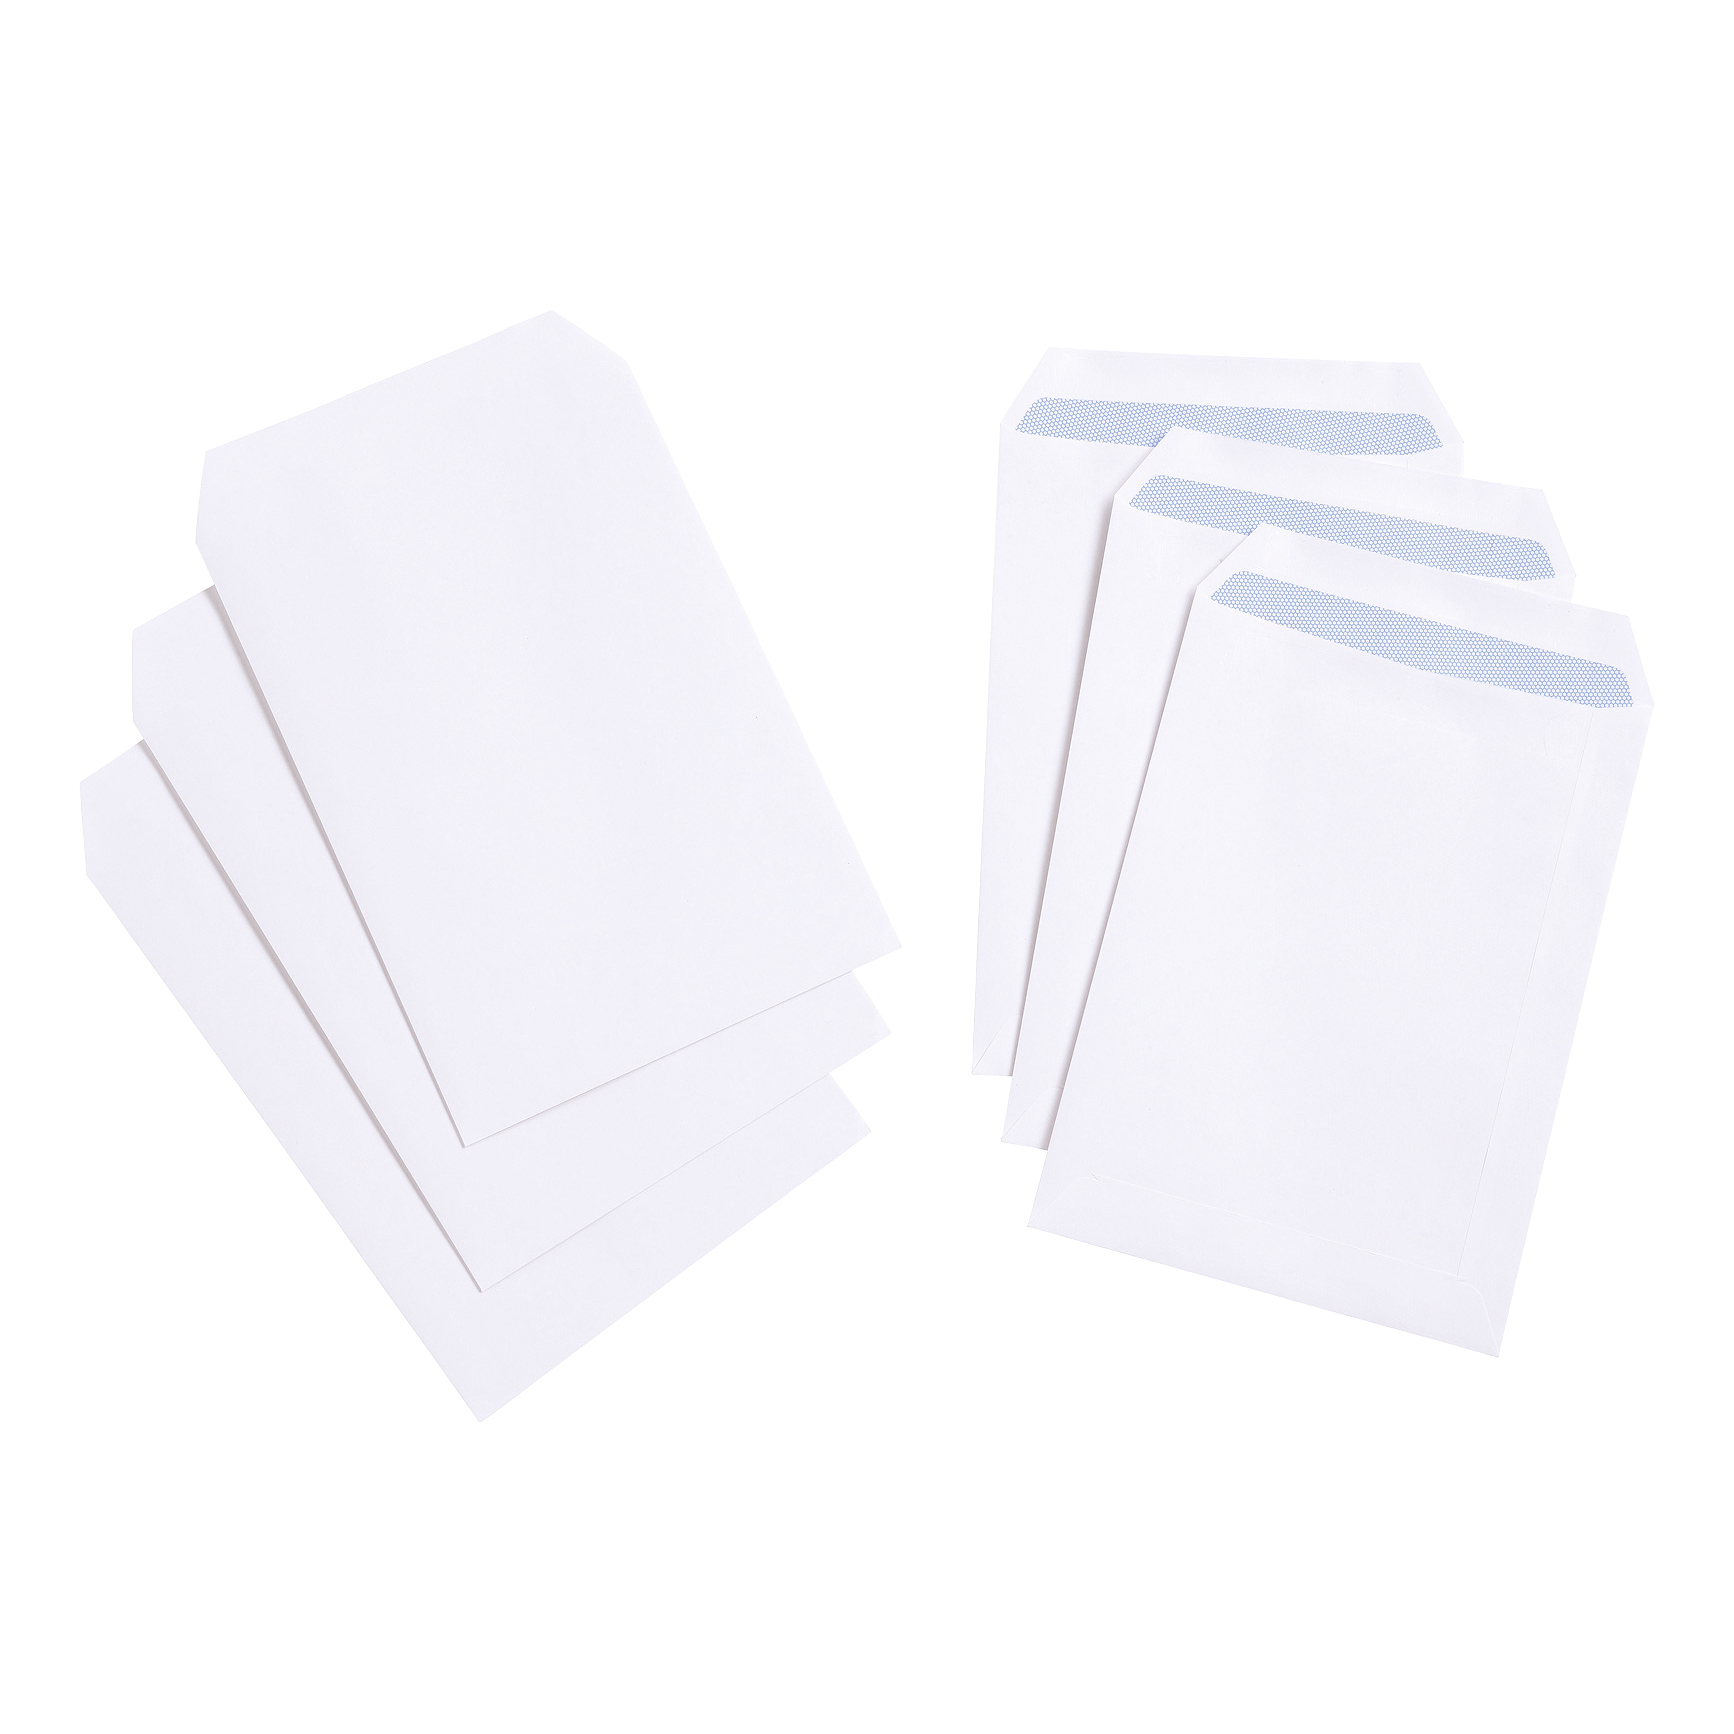 C5 5 Star Value Envelope C5 Pocket Self Seal 90gsm White Pack 500